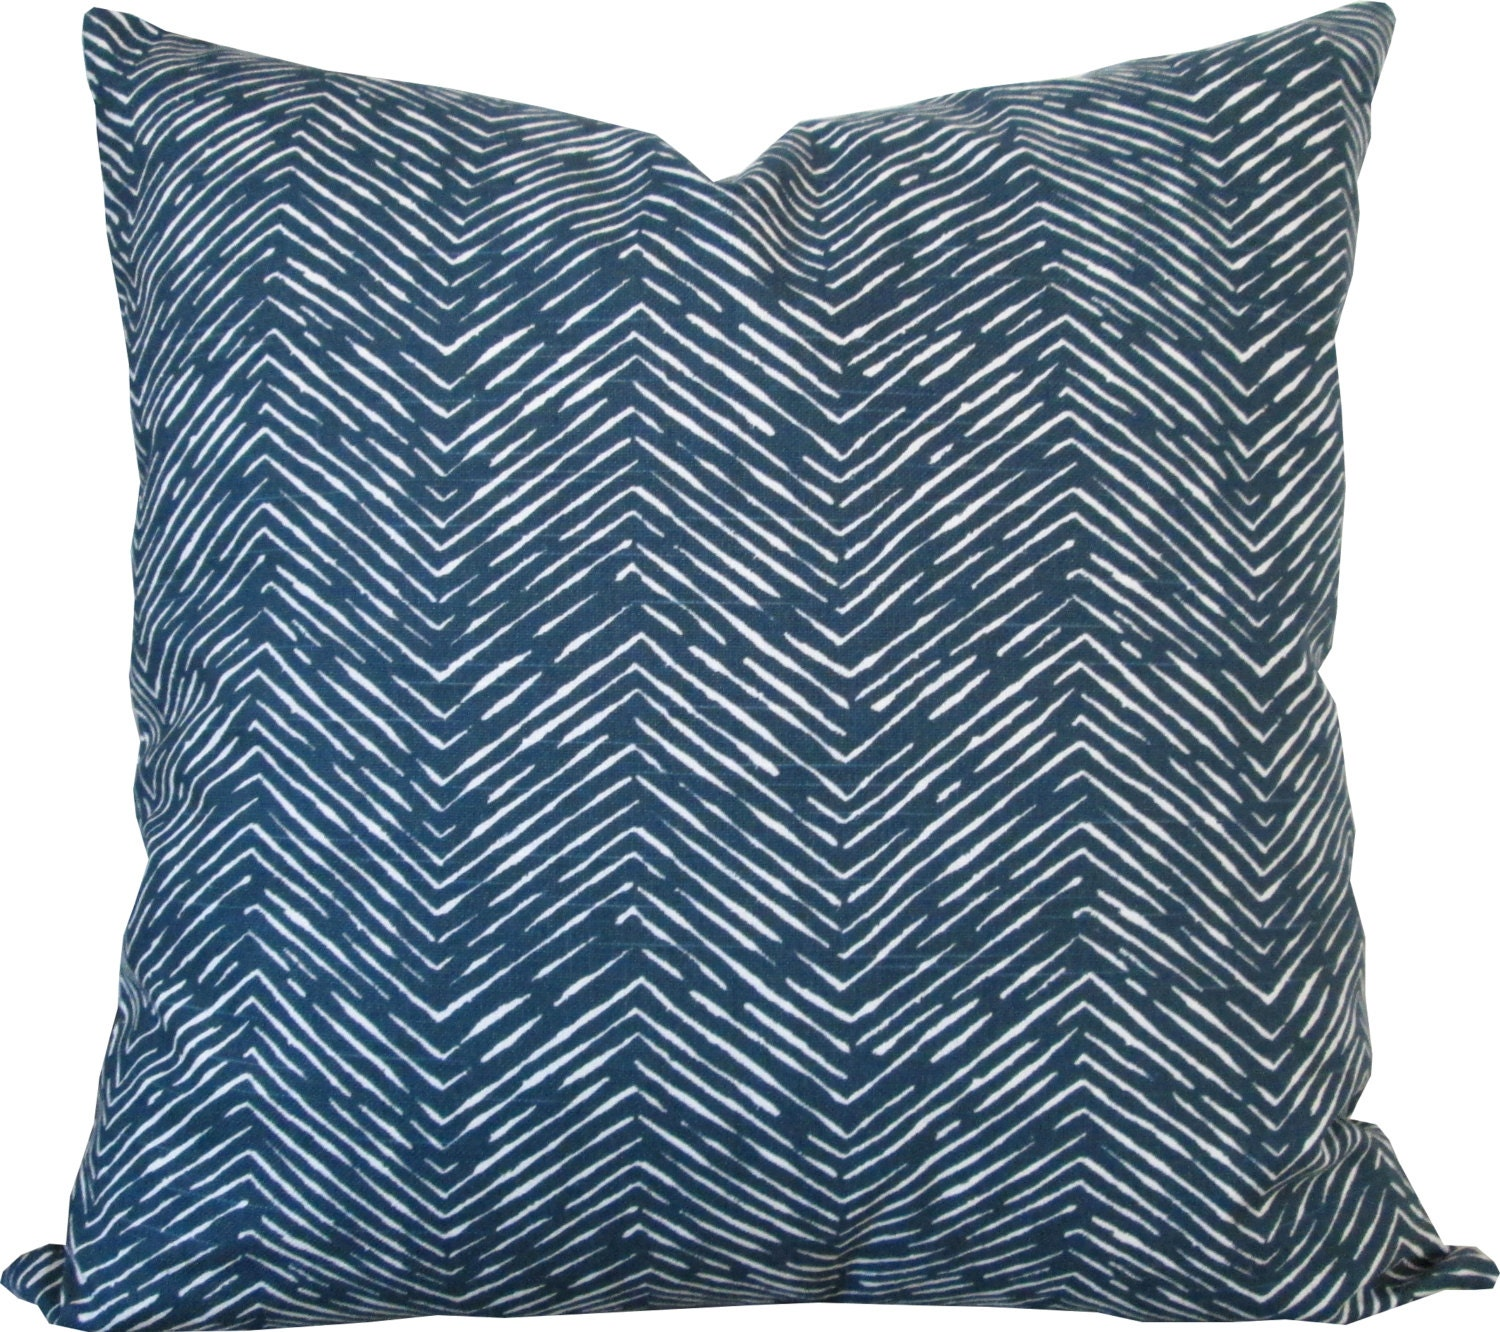 Decorative Pillows Navy : Designer Decorative Pillow Cover-Navy and White Zigzag-Accent